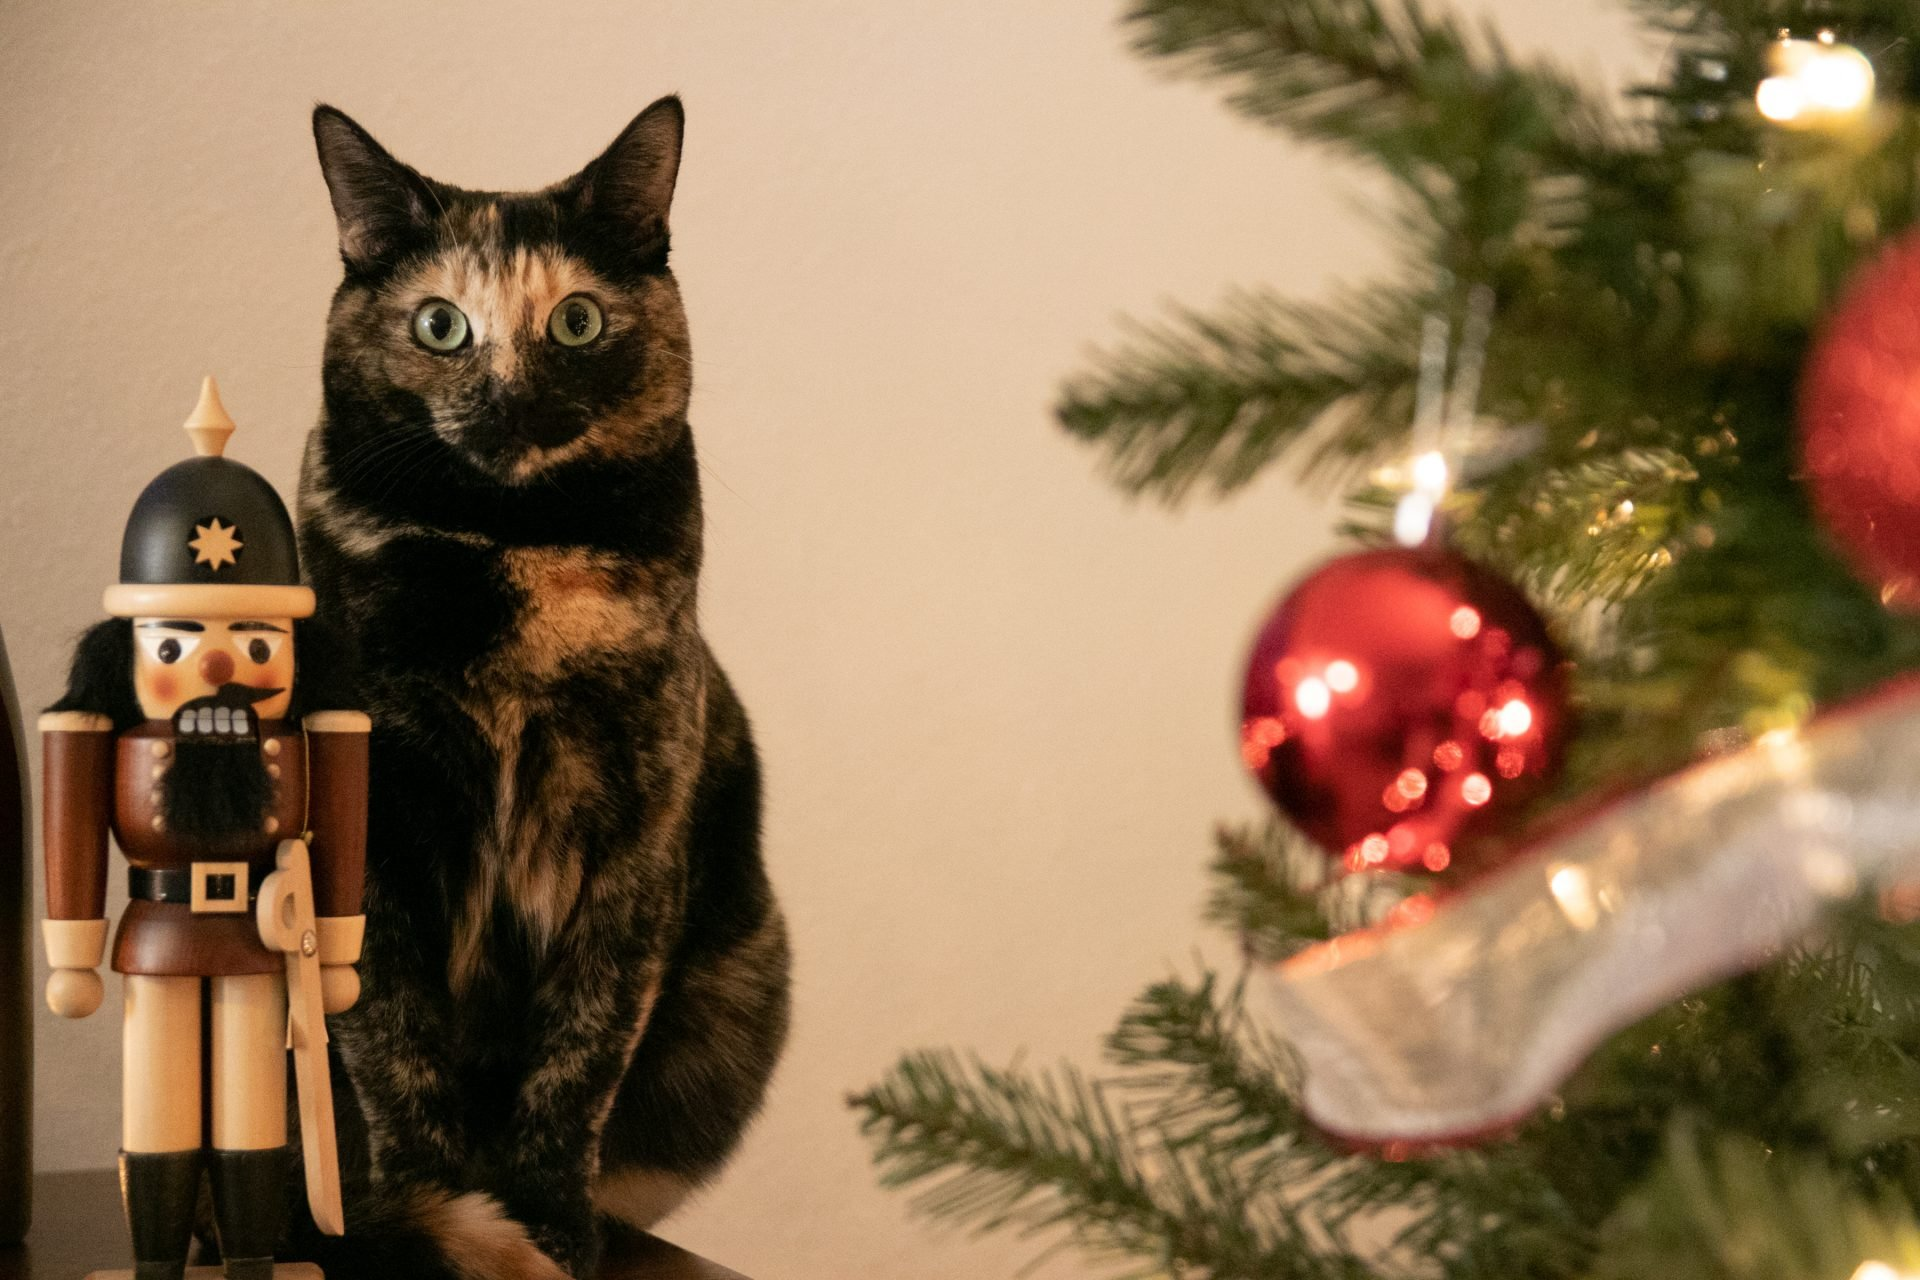 Cat Sitting Besides Nutcracker Doll Next To Holiday Decorations